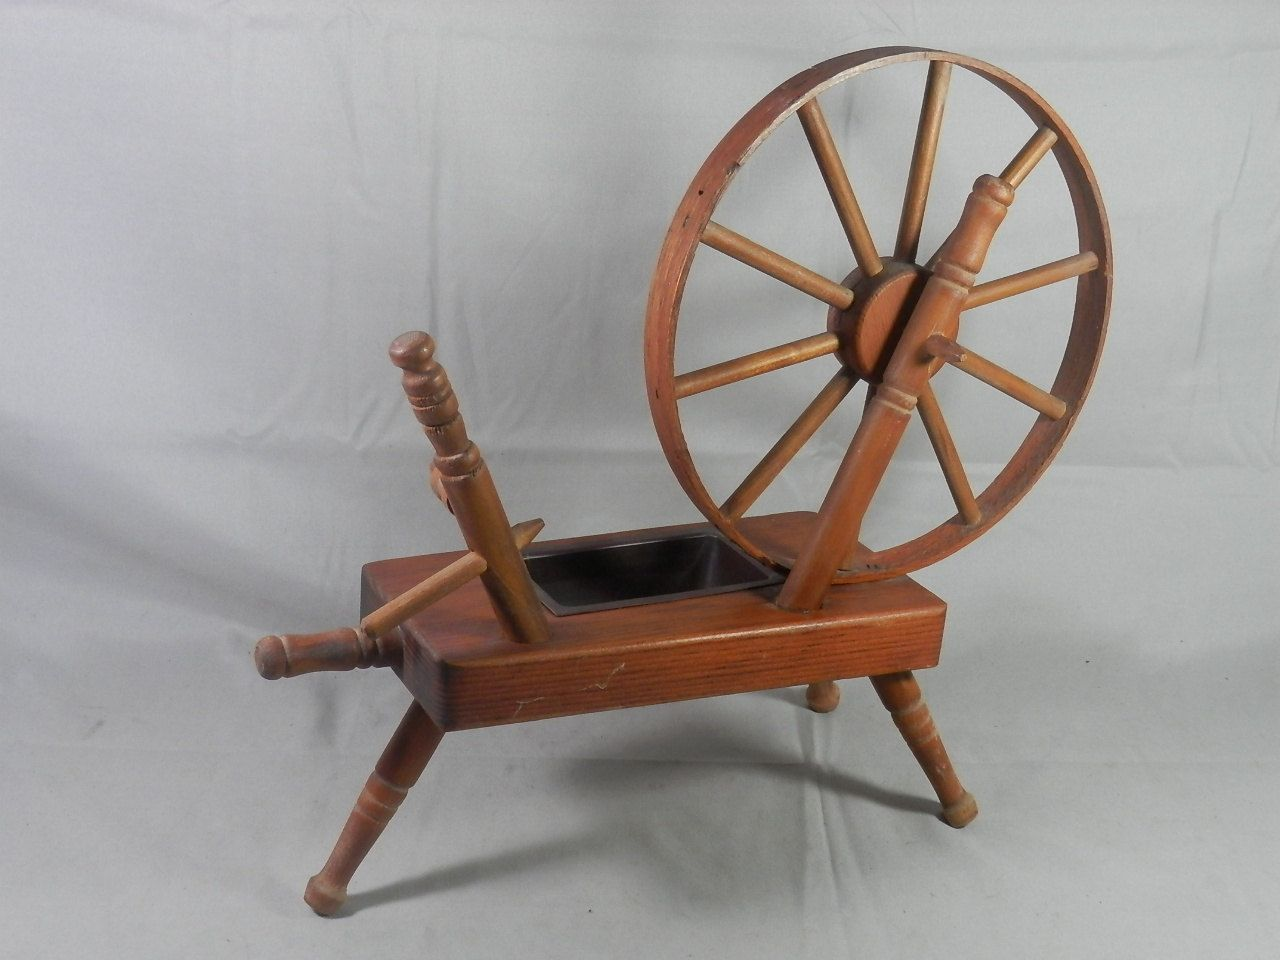 Vintage Spinning Wheel Planter Wood Wooden Table Top